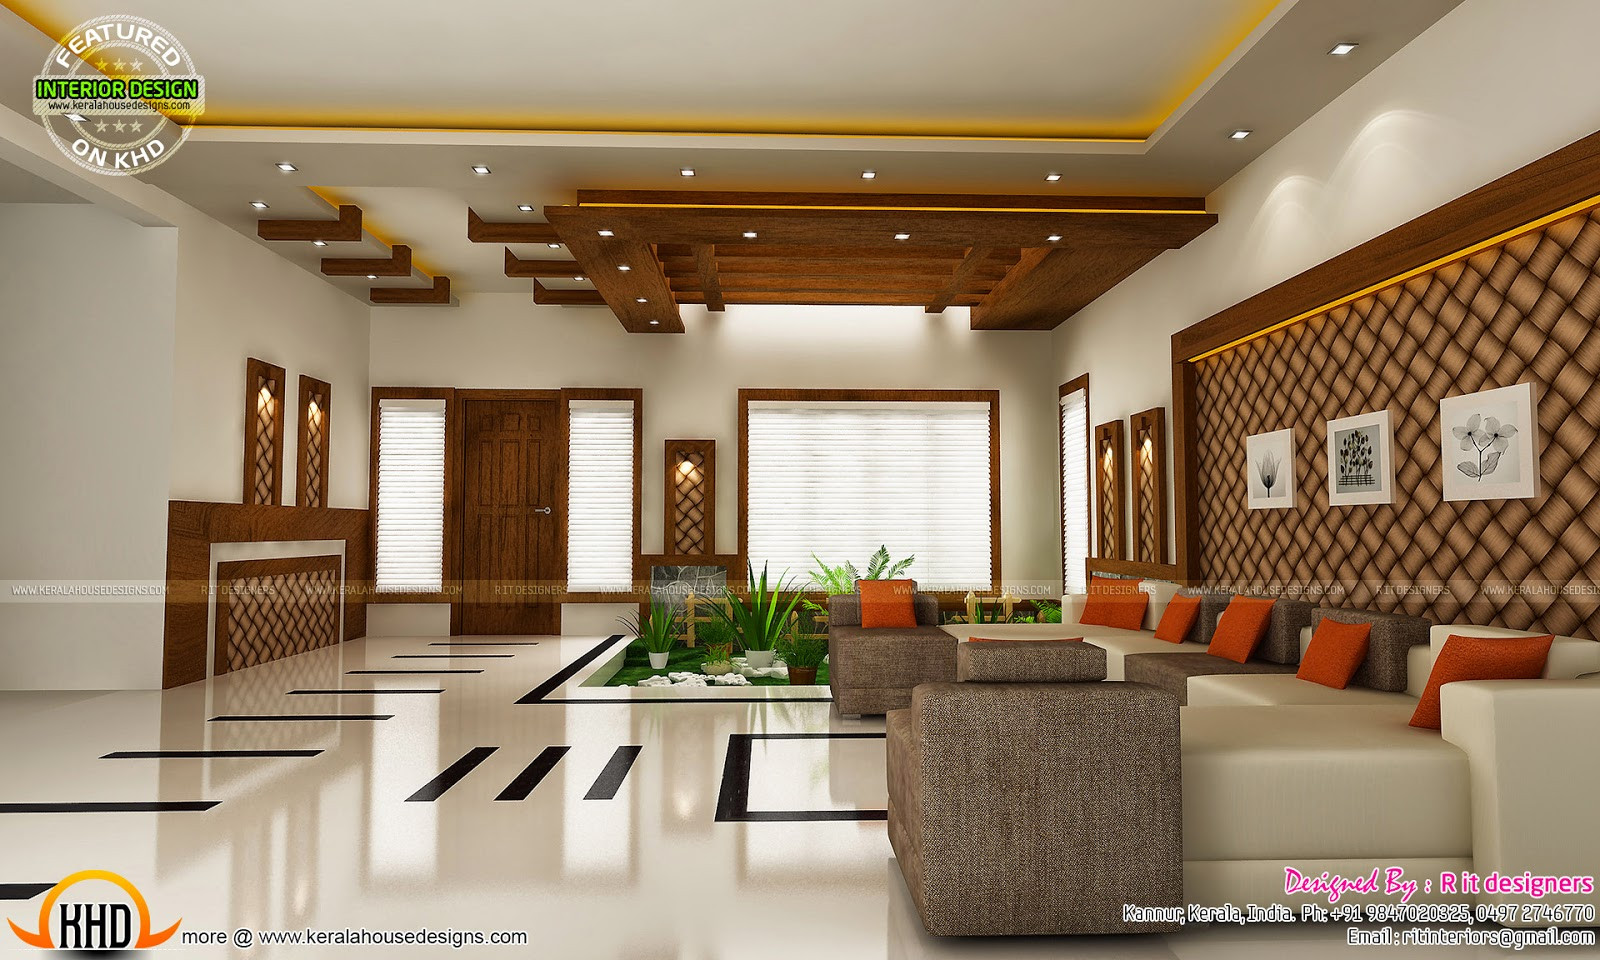 Modern and unique dining kitchen interior kerala home for Home interior designs in india photos